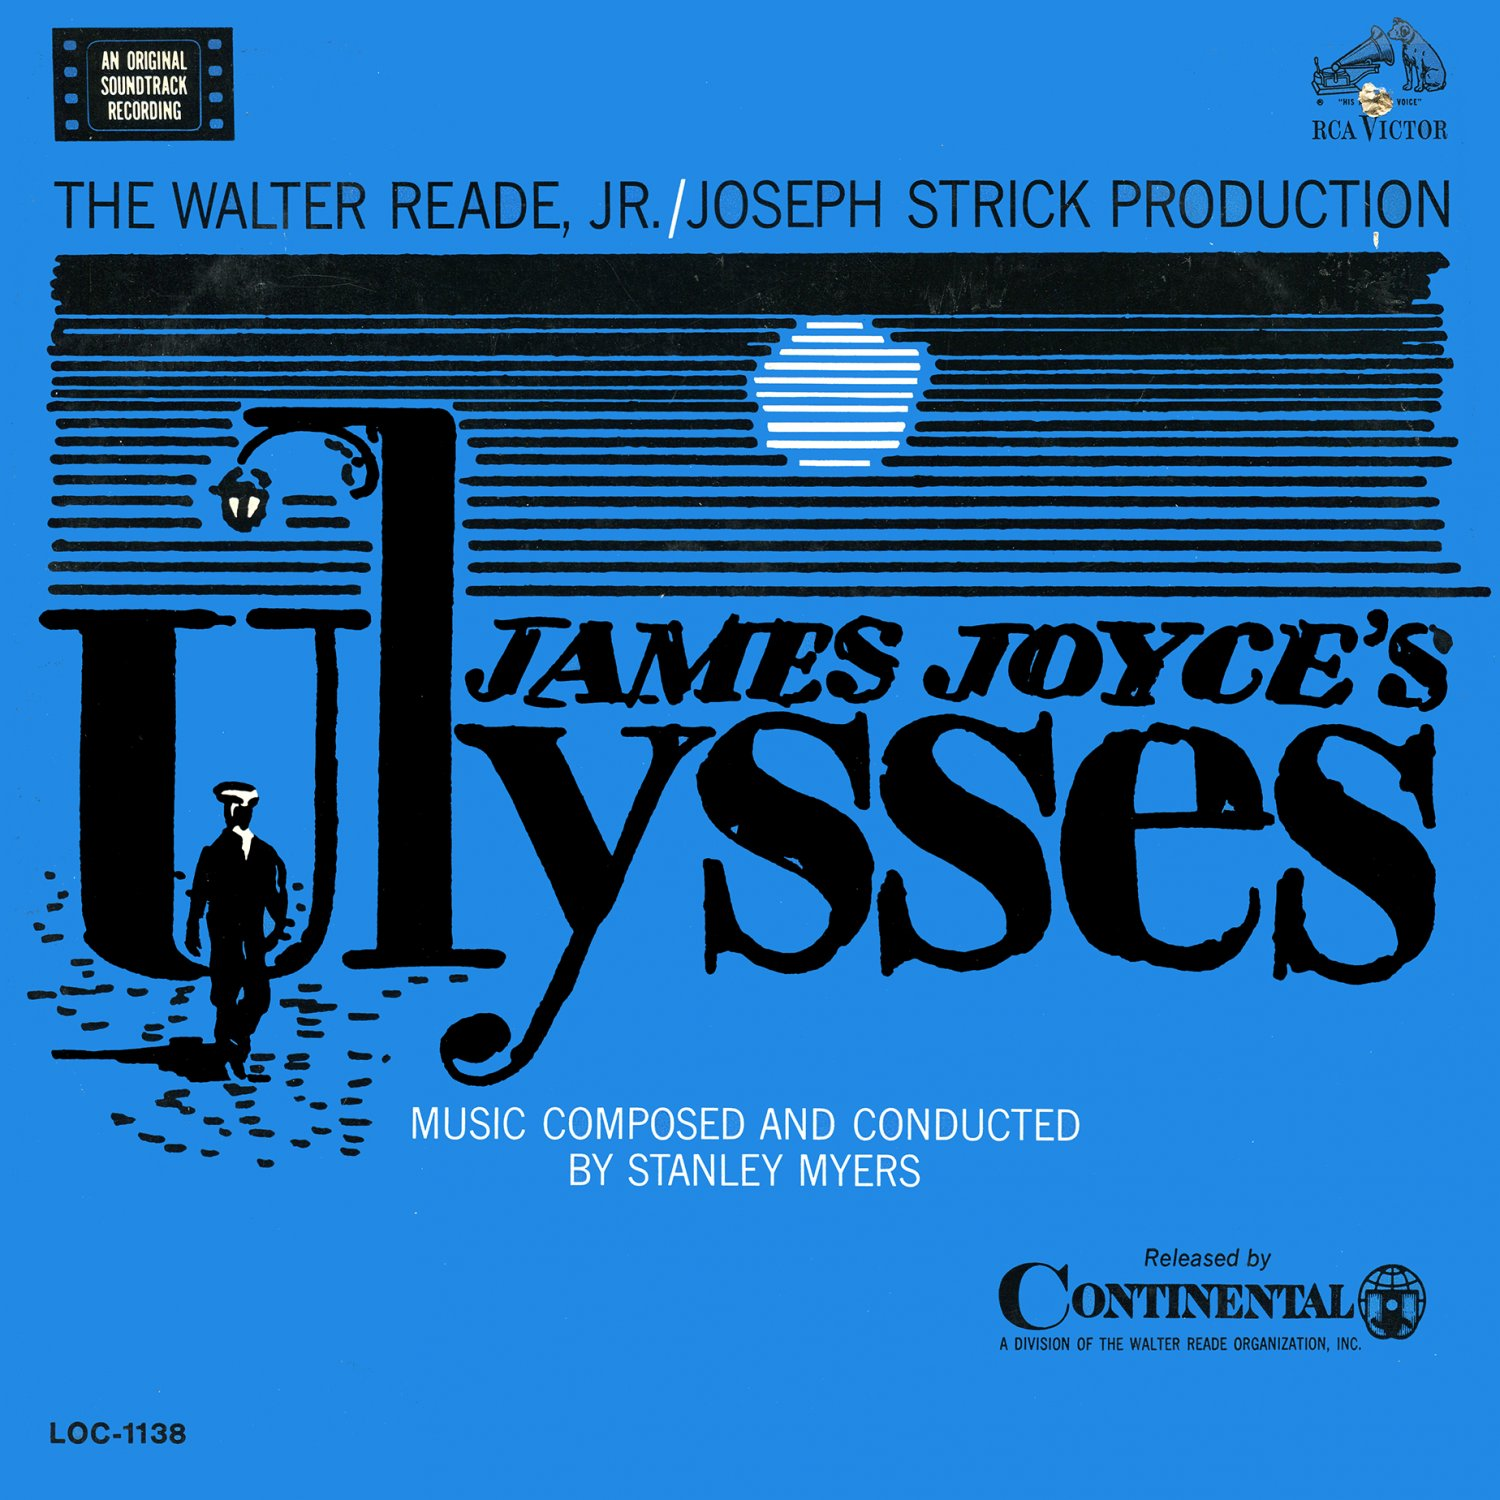 James Joyce's Ulysses (1967) - Original Soundtrack, Stanley Myers OST LP/CD